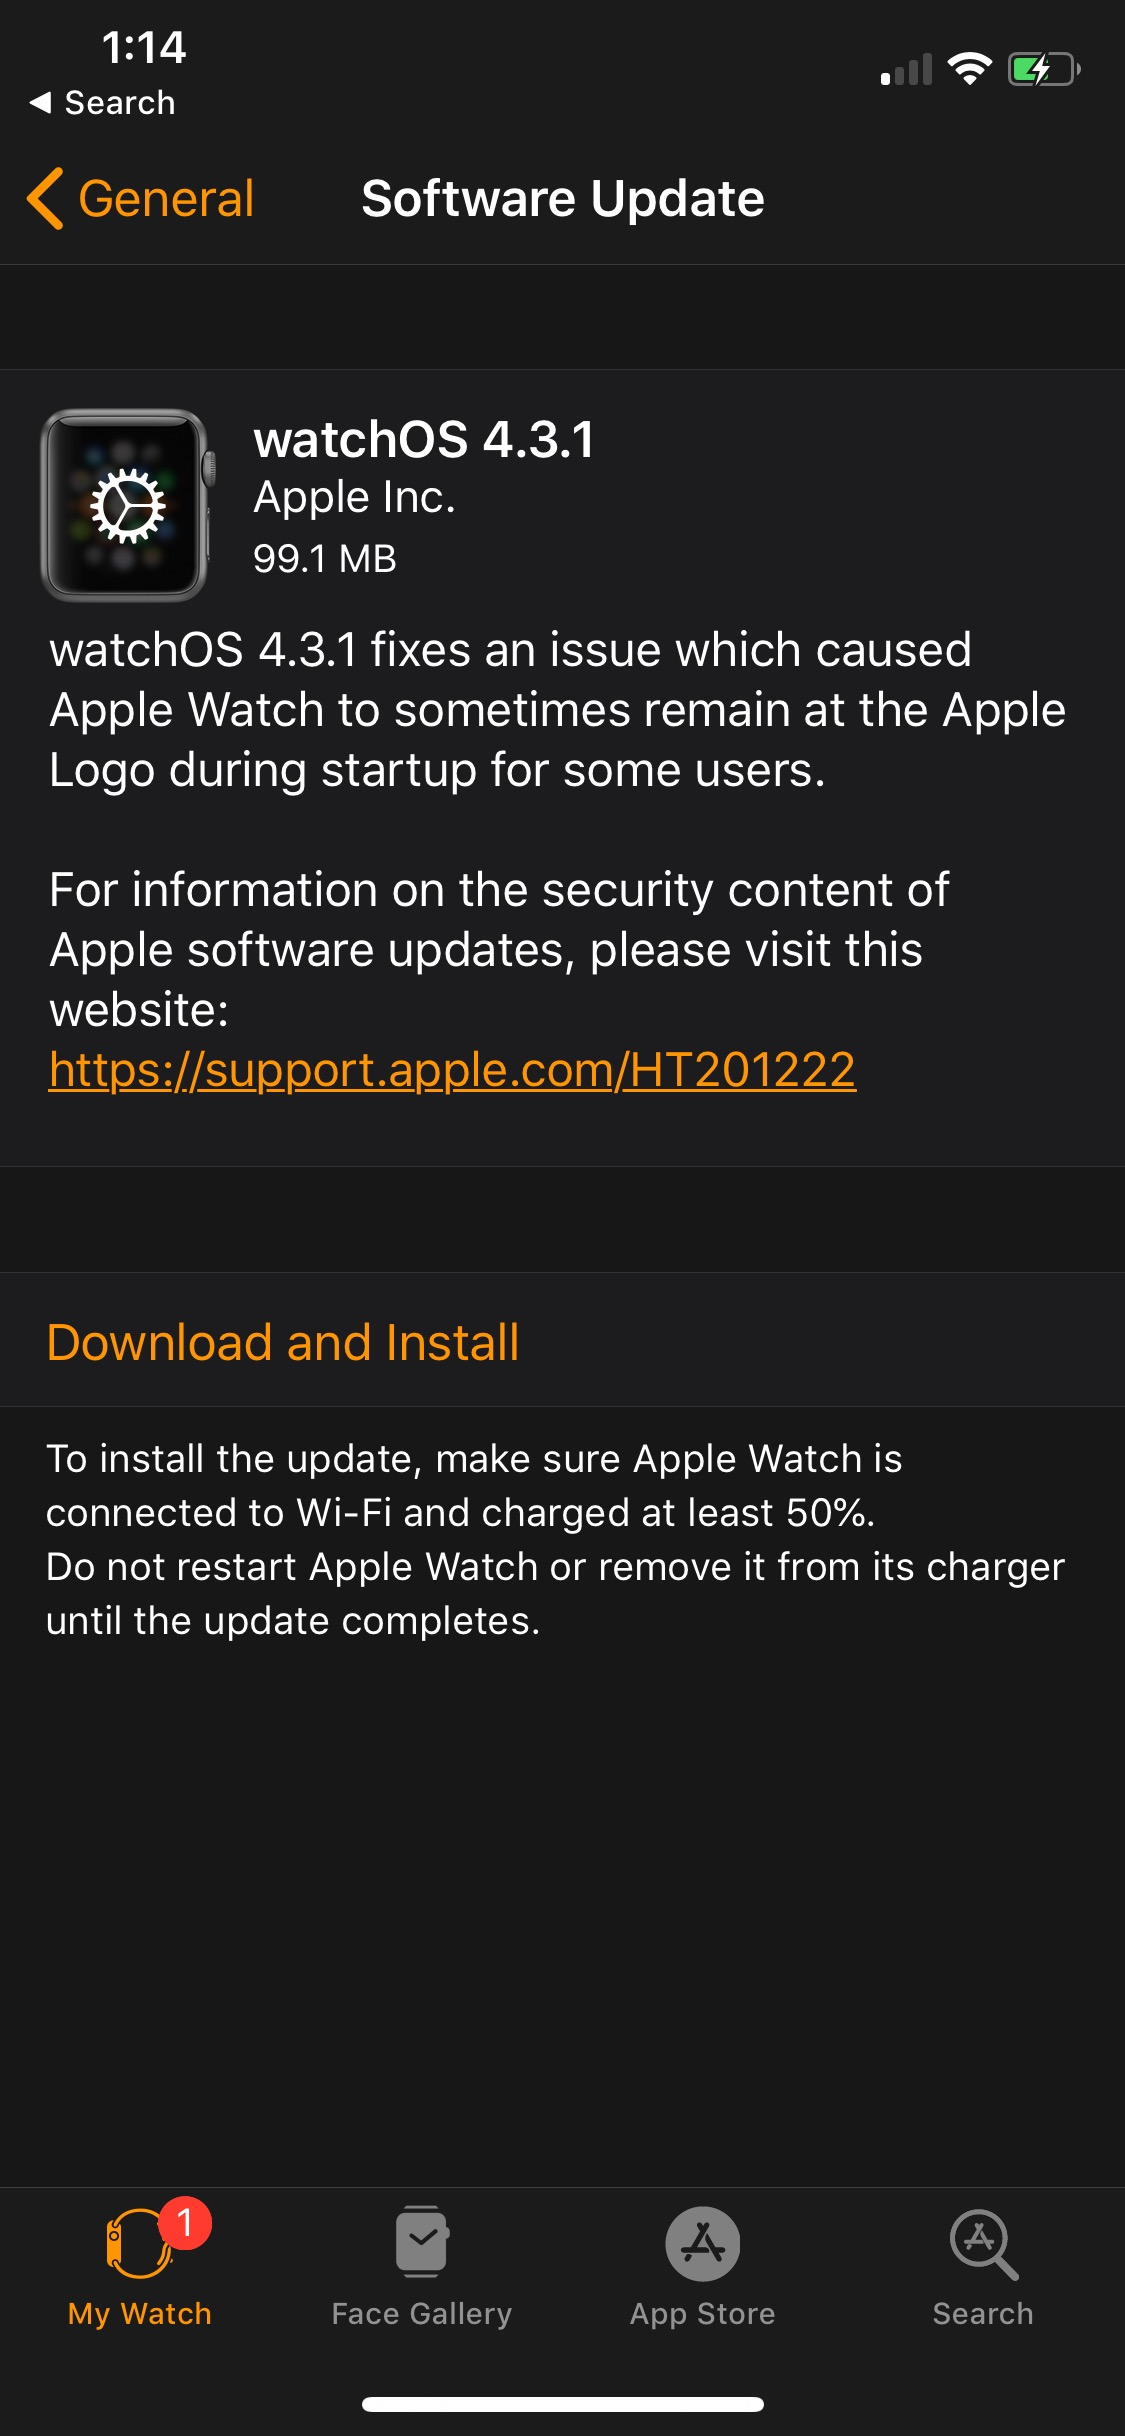 Apple Releases watchOS 4 3 1 to Fix Startup Issue  Download     Apple Releases watchOS 4 3 1 to Fix Startup Issue  Download